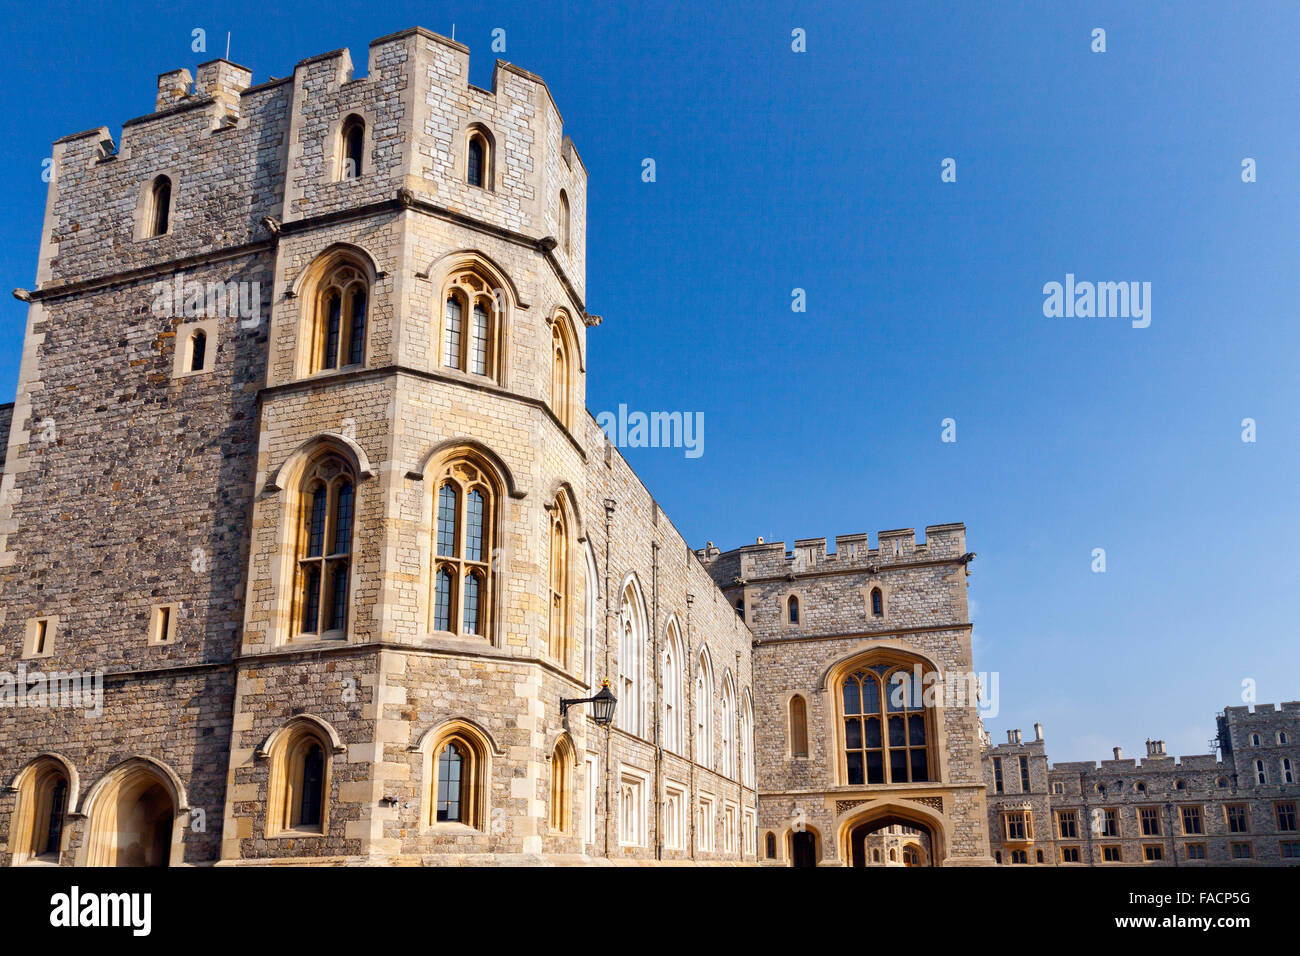 King John's Tower (left) and the State Entrance (centre) at Windsor Castle, Berkshire, England, UK - Stock Image